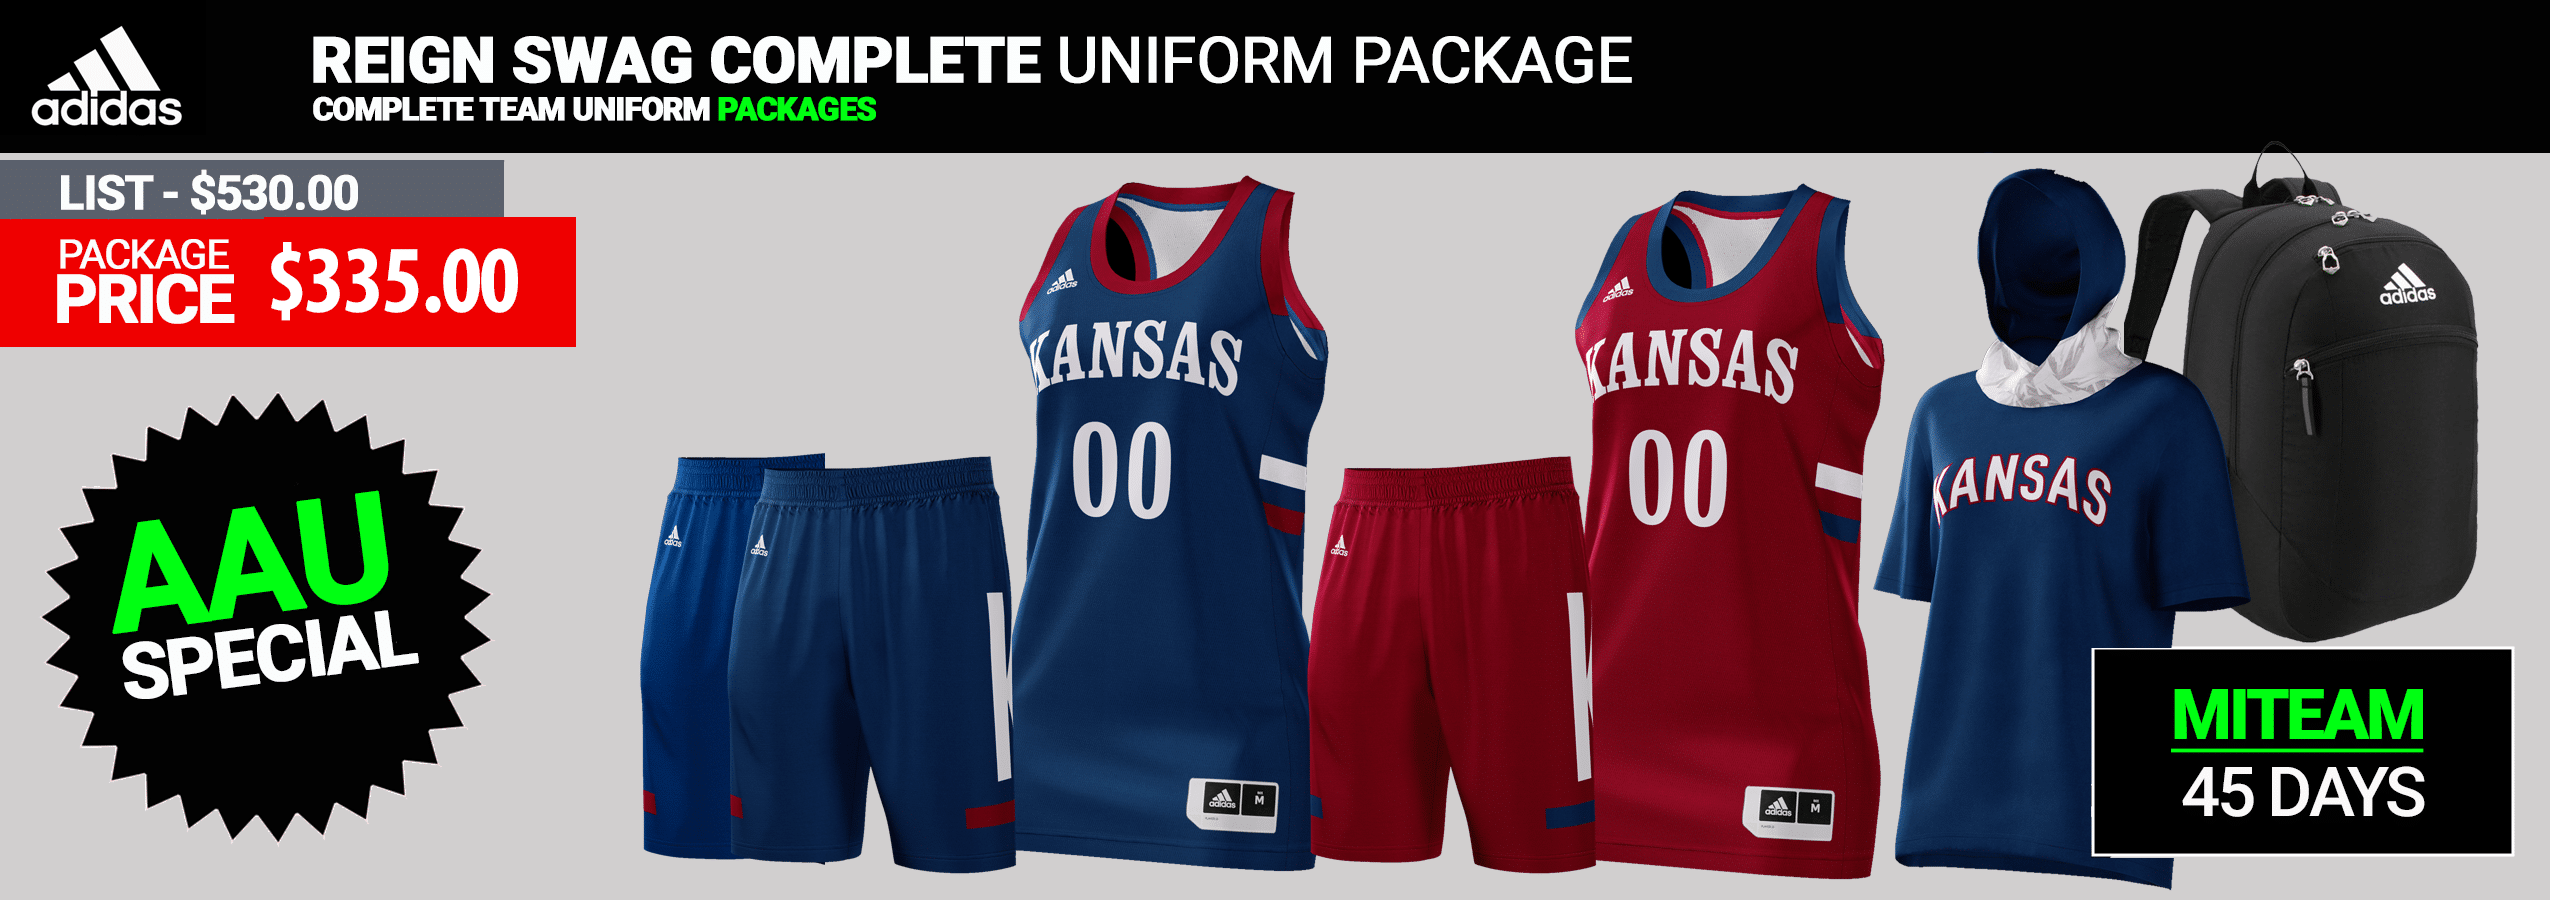 c5c732da3168 Adidas Custom Reversible Youth Basketball Uniform Package